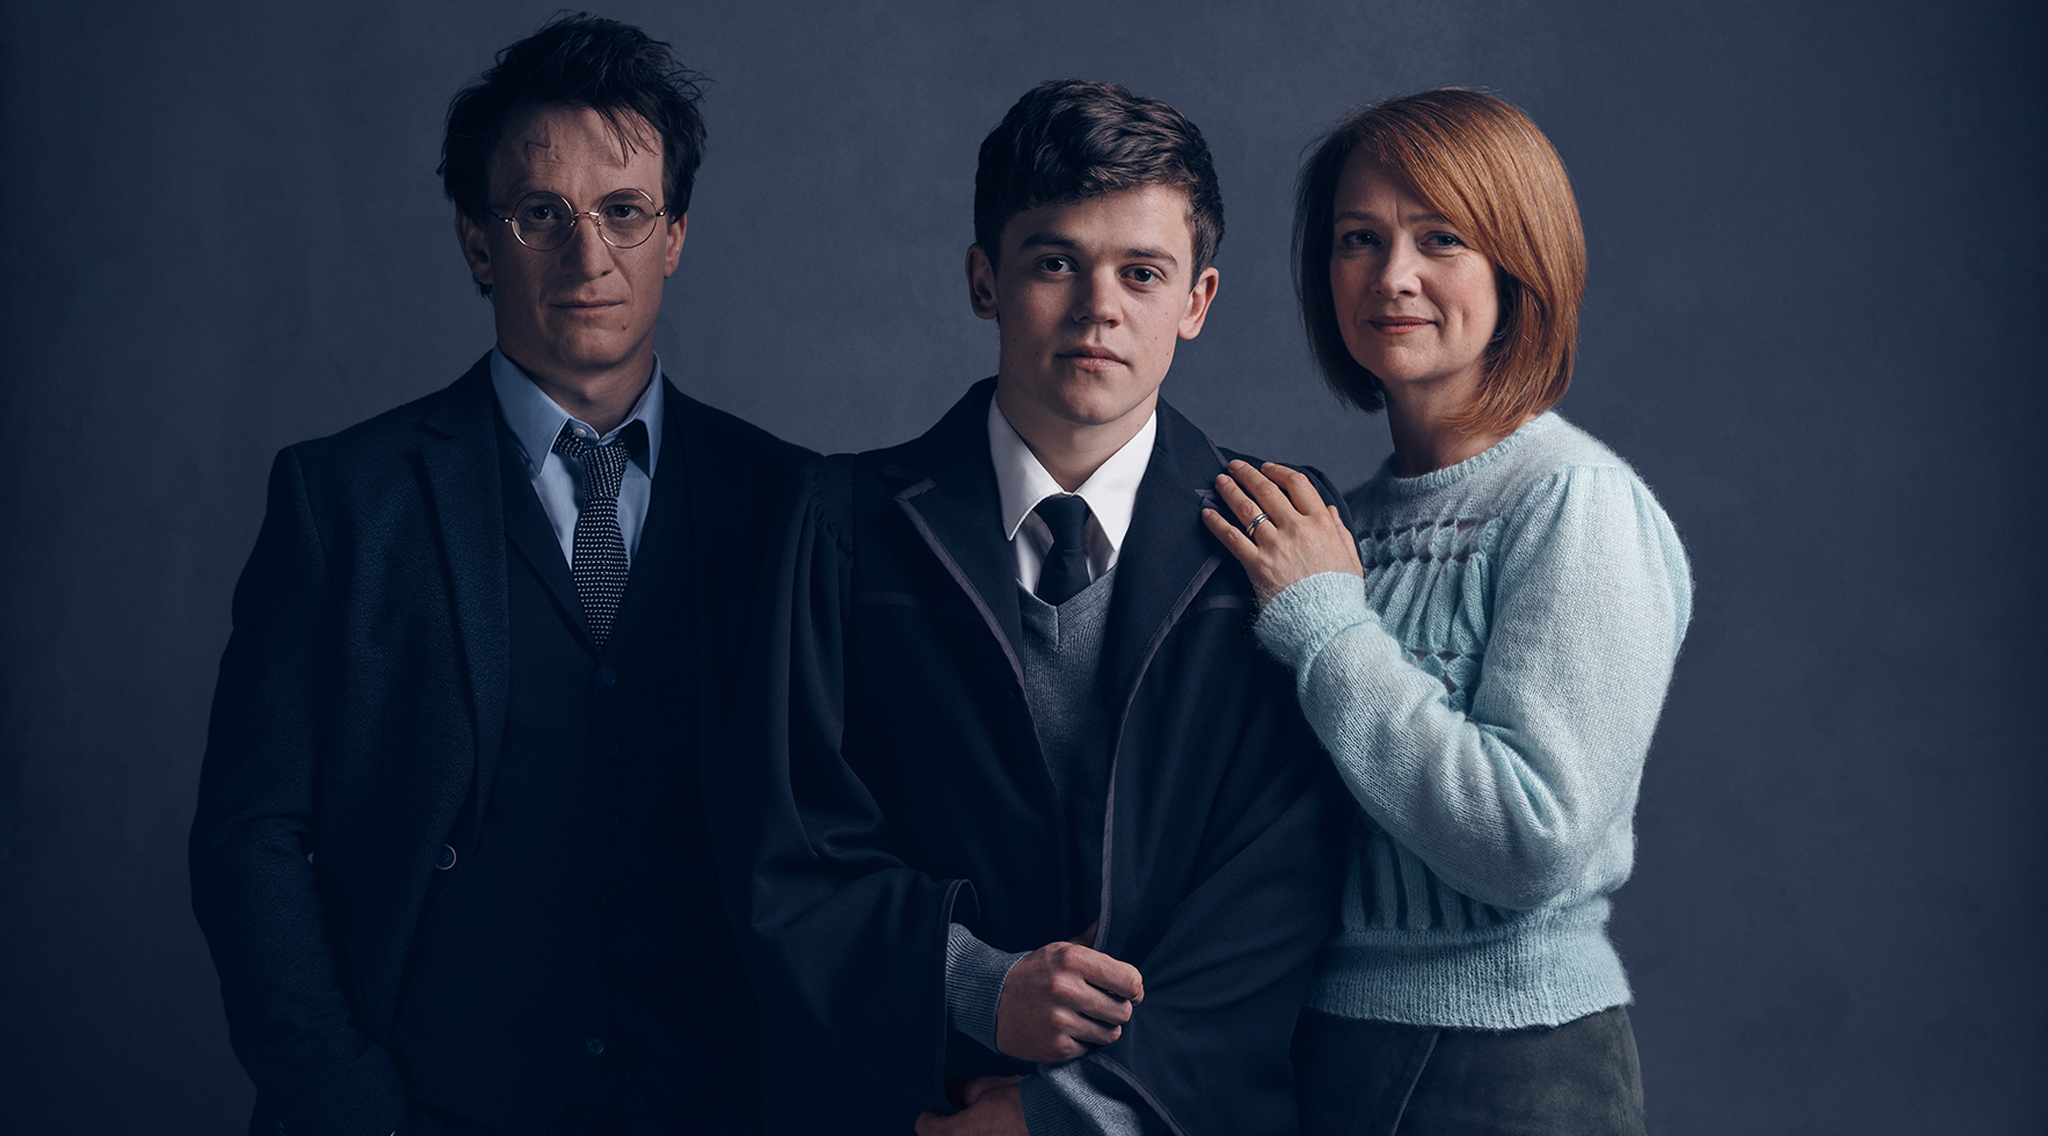 Here's how to see Harry Potter and the Cursed Child in London for only $21 dollars